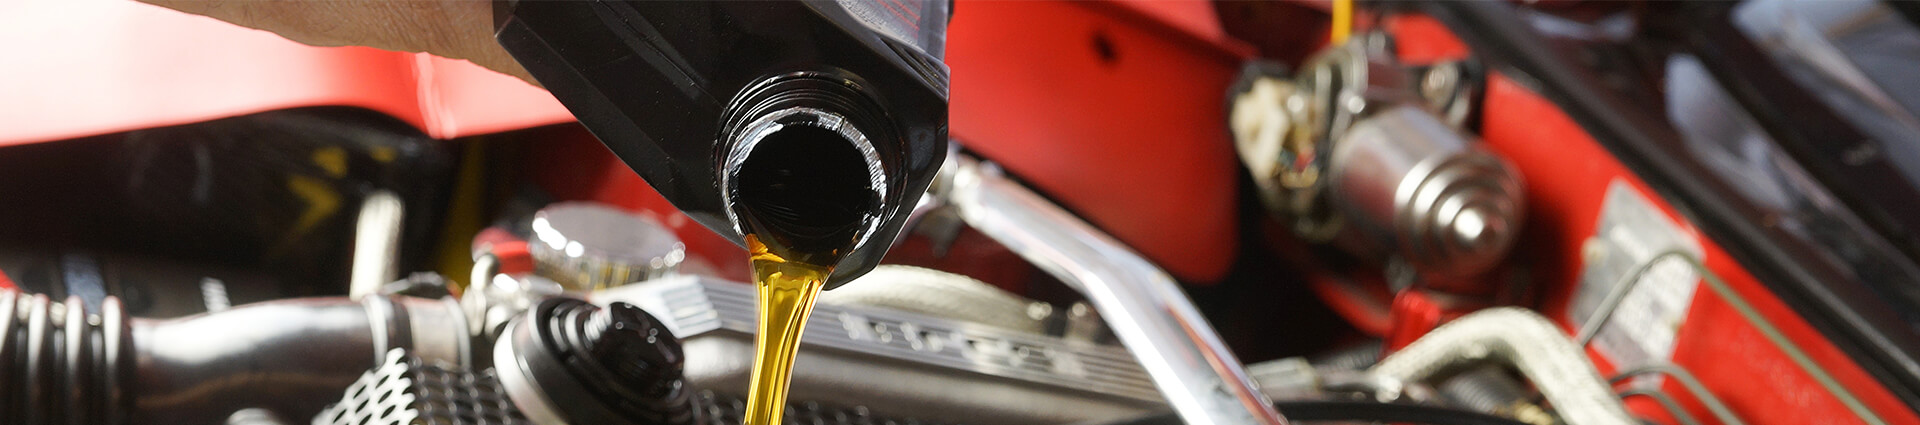 $9.99 Standard Oil Change Page Banner